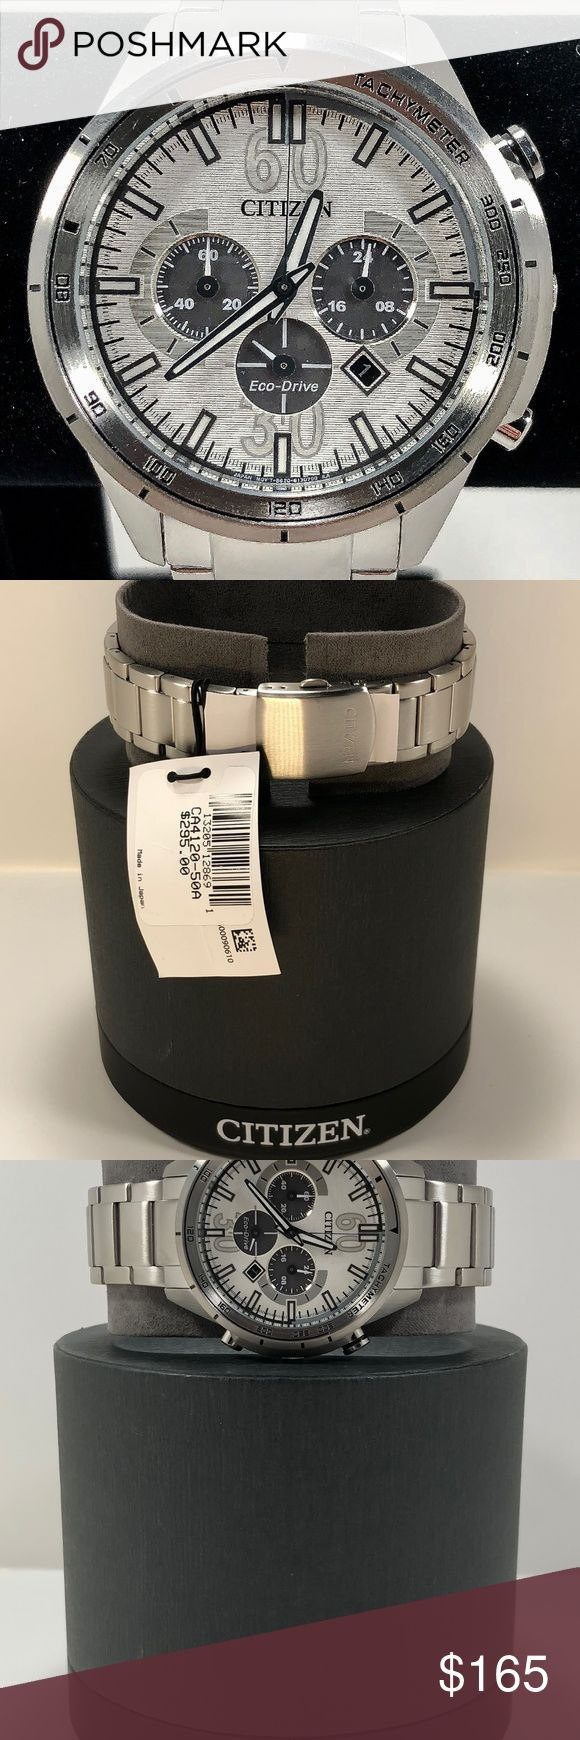 Citizen Eco-Drive Men's Watch CA4120-50A Citizen Eco-Drive Men's Watch CA4120-50A Stainless Band with white face New with tags and original box Item Number CA4120-50A Original retail price $295 Citizen Accessories Watches